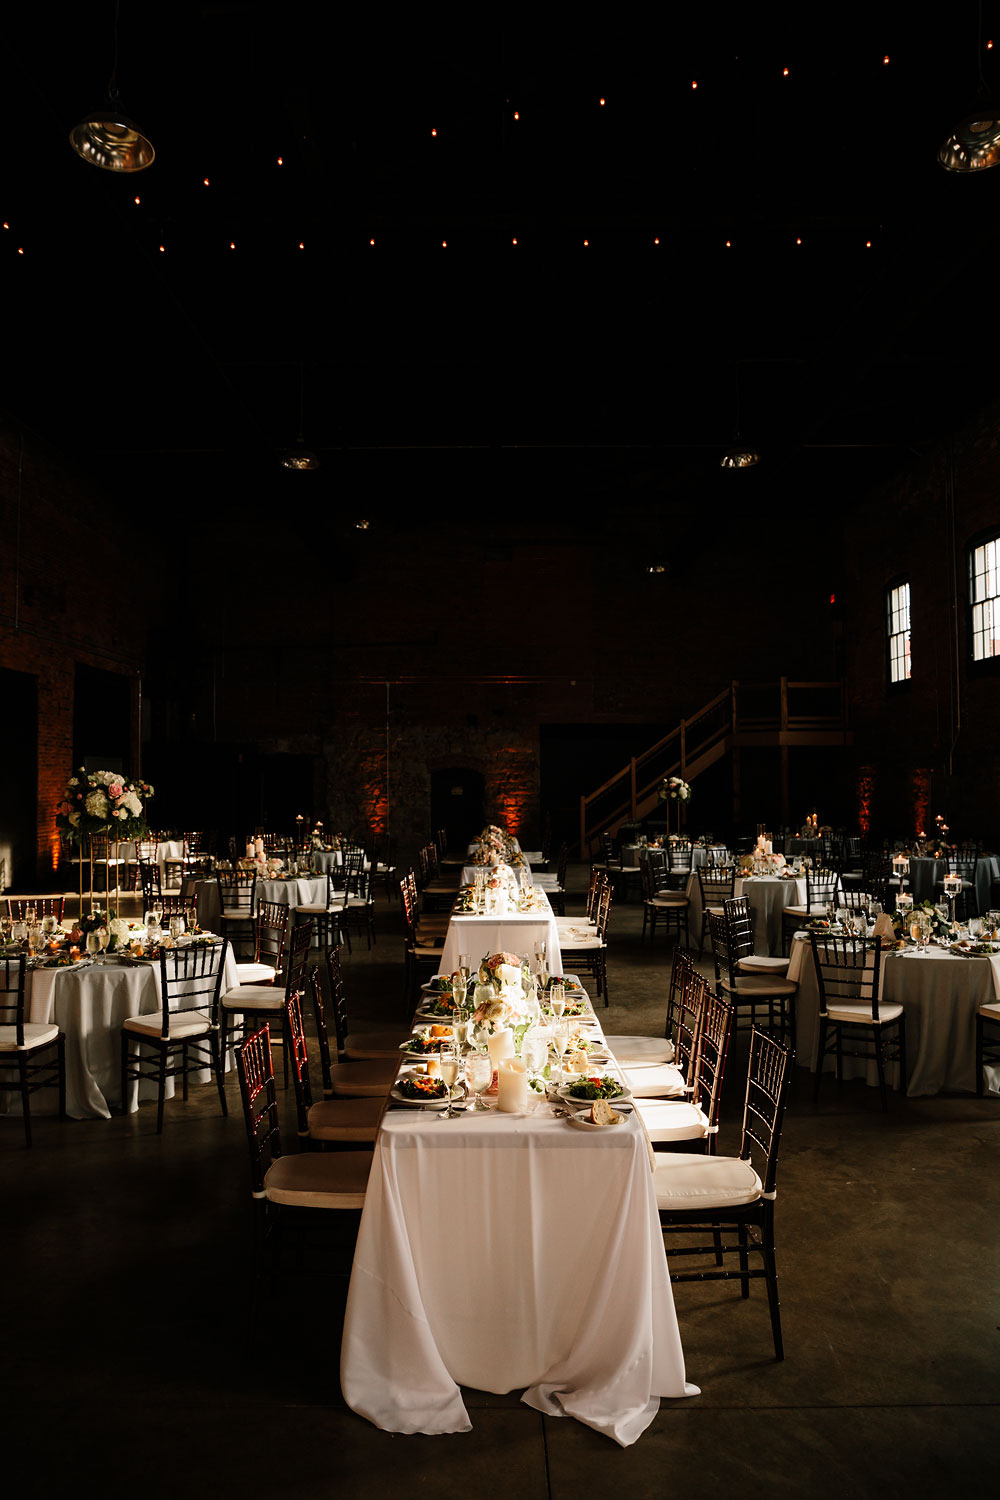 tenk-west-bank-flats-photography-wedding-photographers-in-cleveland-downtown-industrial-152.jpg